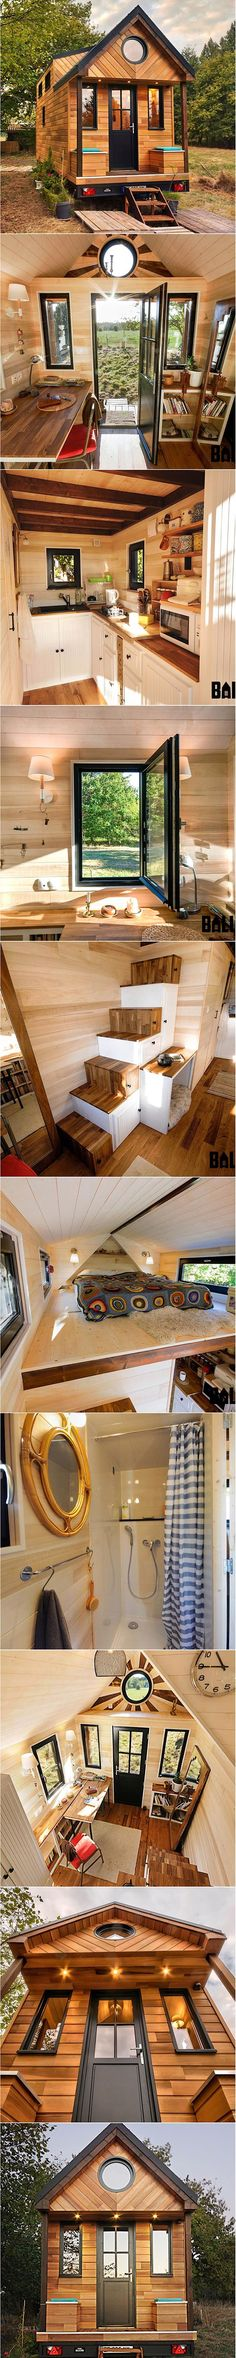 The Avonlea Tiny House @tinyhousebaluchon article found over @tnylvng ✨ French builder Baluchon created this artistic beauty, Avonlea, for a bookseller that lives a few kilometers outside of Nantes. The 6-meter (~20-foot) tiny house is crafted from cedar siding and features a covered patio with two bench seats. The interior is nice and […]